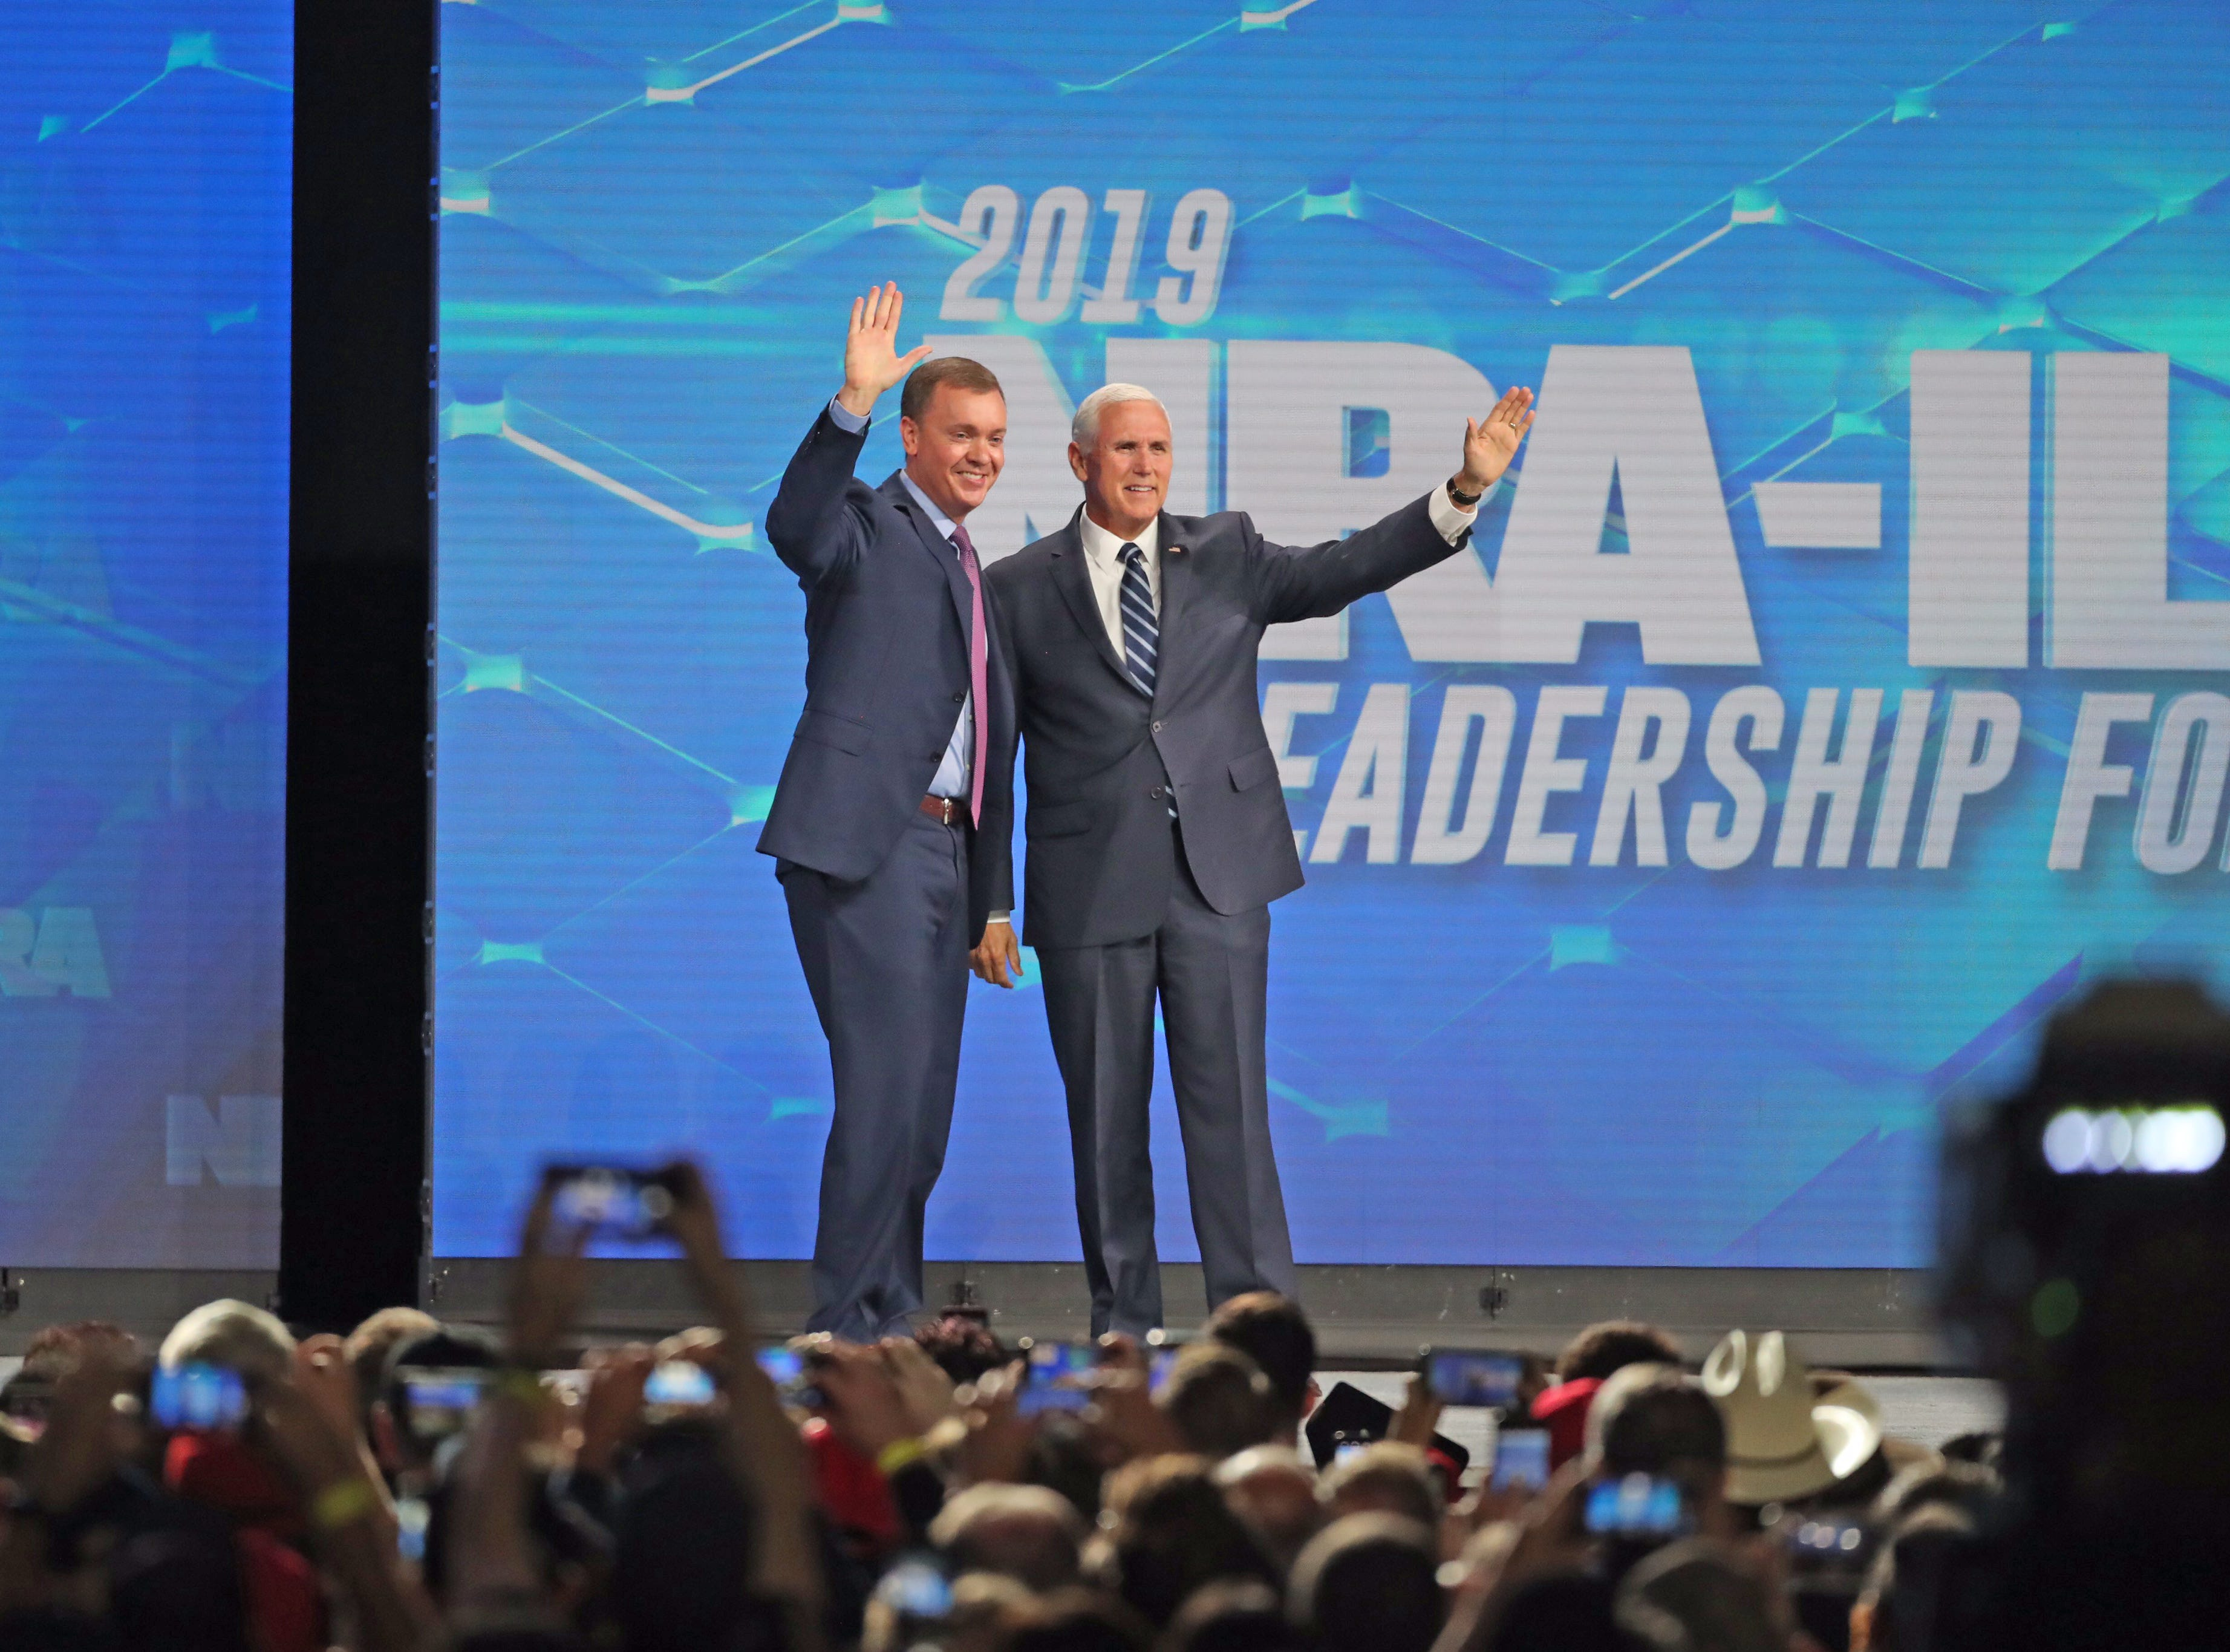 Chris Cox, executive director of the NRA Institute for Legislative Action with Vice President Mike Pence at the Leadership Forum at Lucas Oil Stadium on Friday, April 26, 2019.